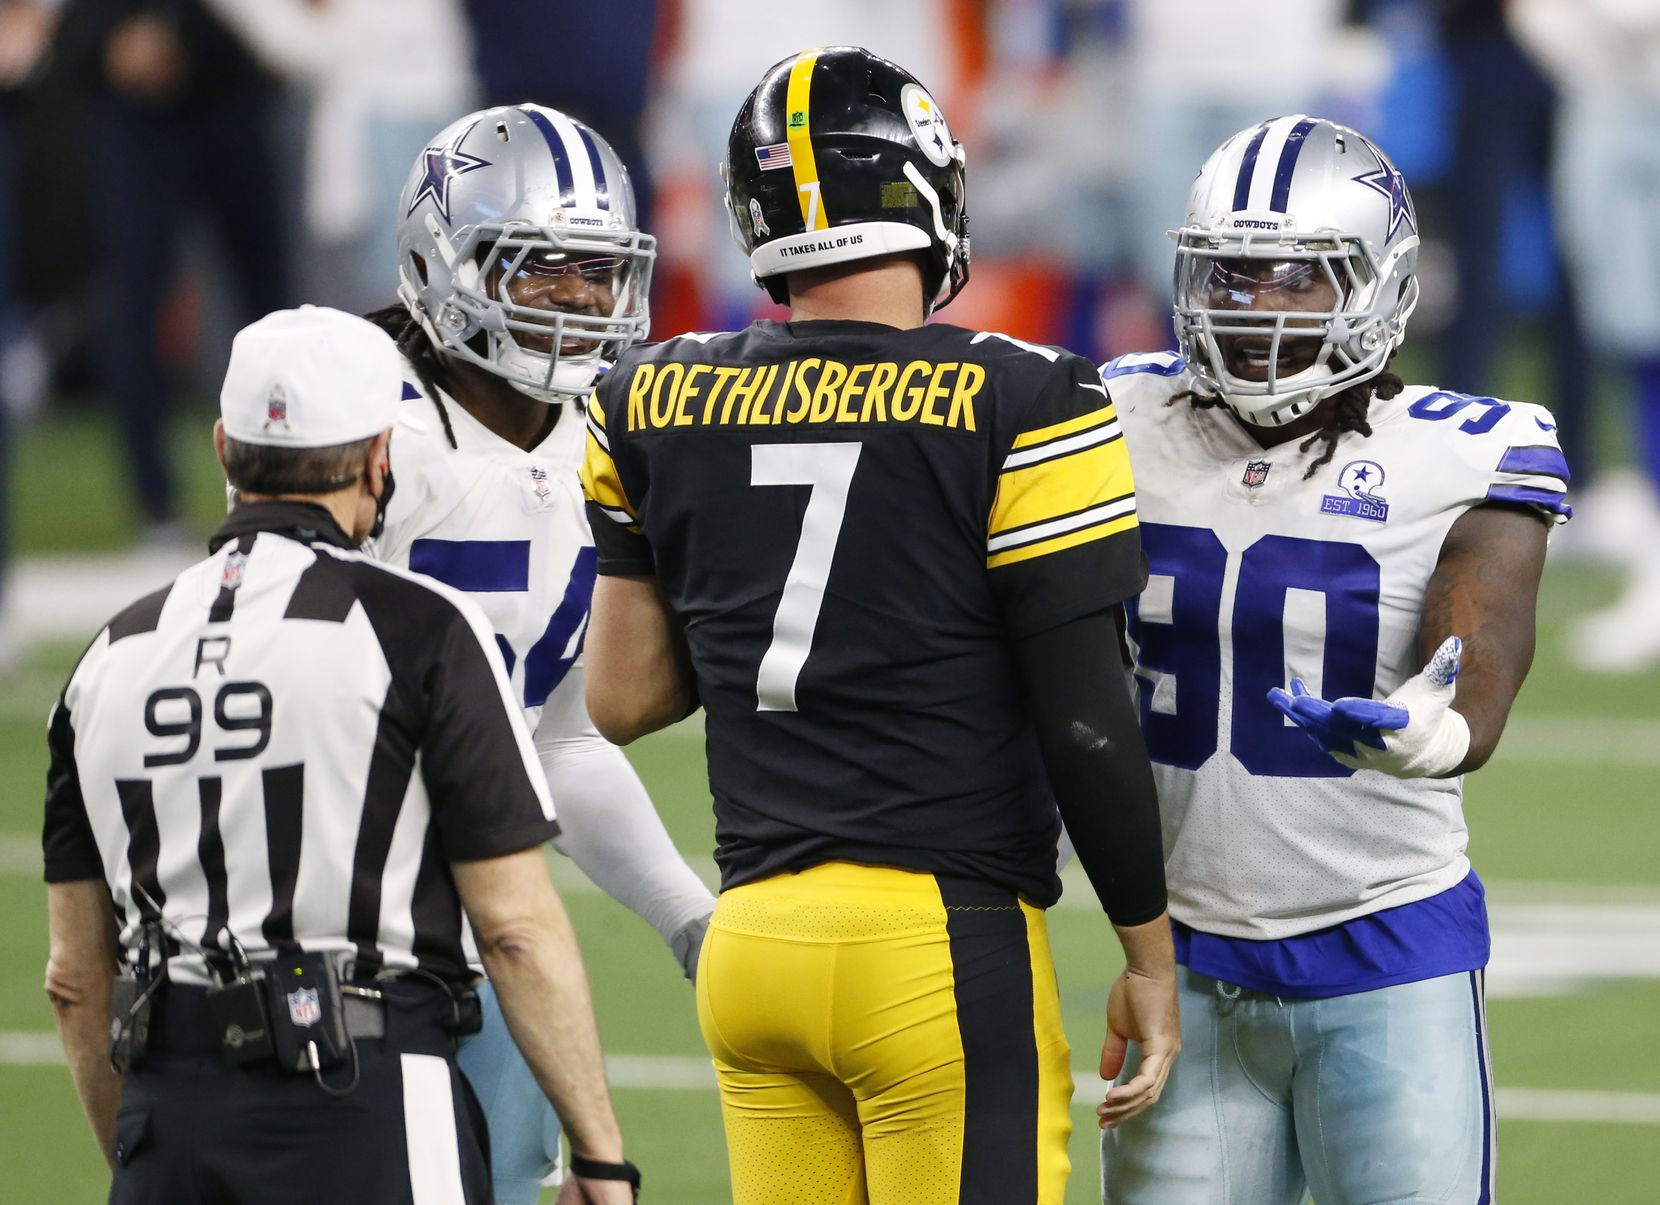 Dallas Cowboys defensive end DeMarcus Lawrence (90) and linebacker Jaylon Smith (54) question a call from referee Tony Corrente (99) as Pittsburgh Steelers quarterback Ben Roethlisberger (7) walks between them at AT&T Stadium in Arlington, Texas on Sunday, November 8, 2020.